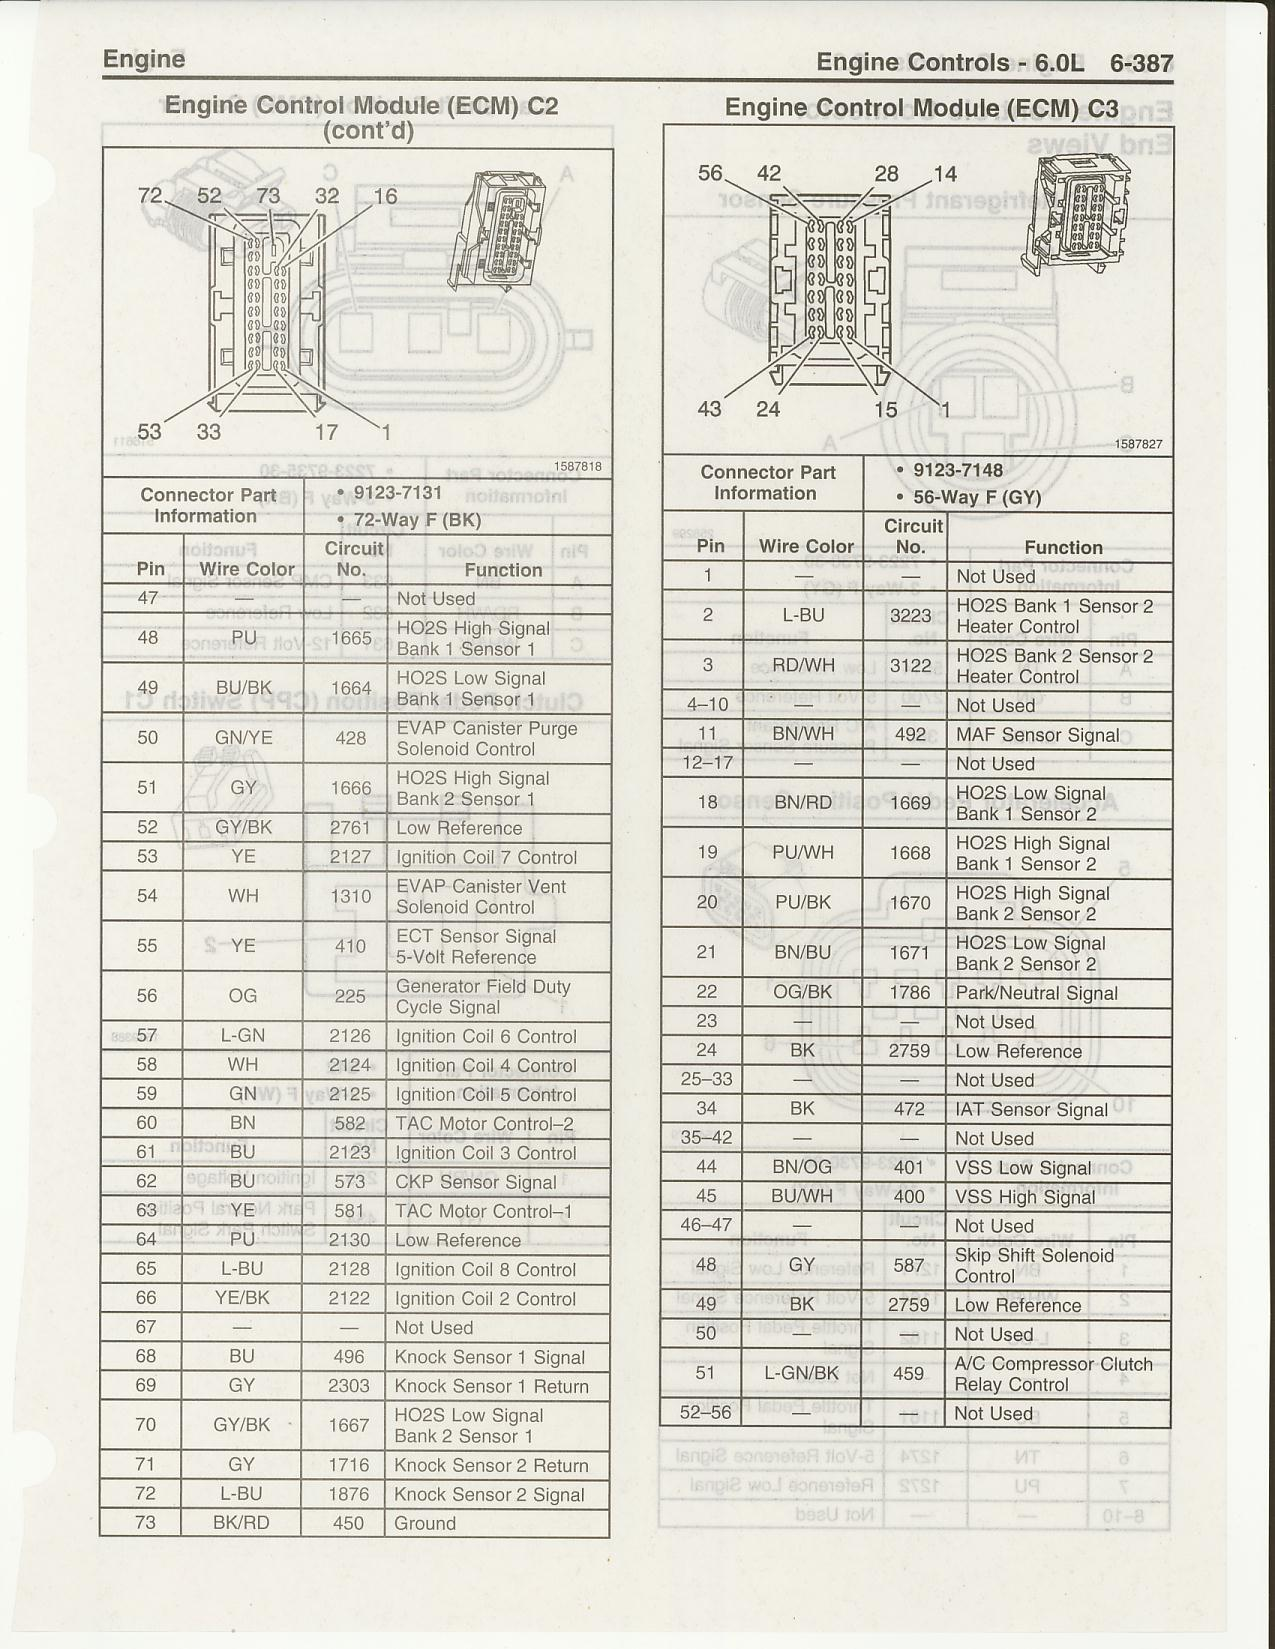 E38 Ecm Pinout Request] Can Anyone Scan In A Couple Pictures For 1992 Corvette Ecm Wiring Diagram Corvette Ecm Wiring